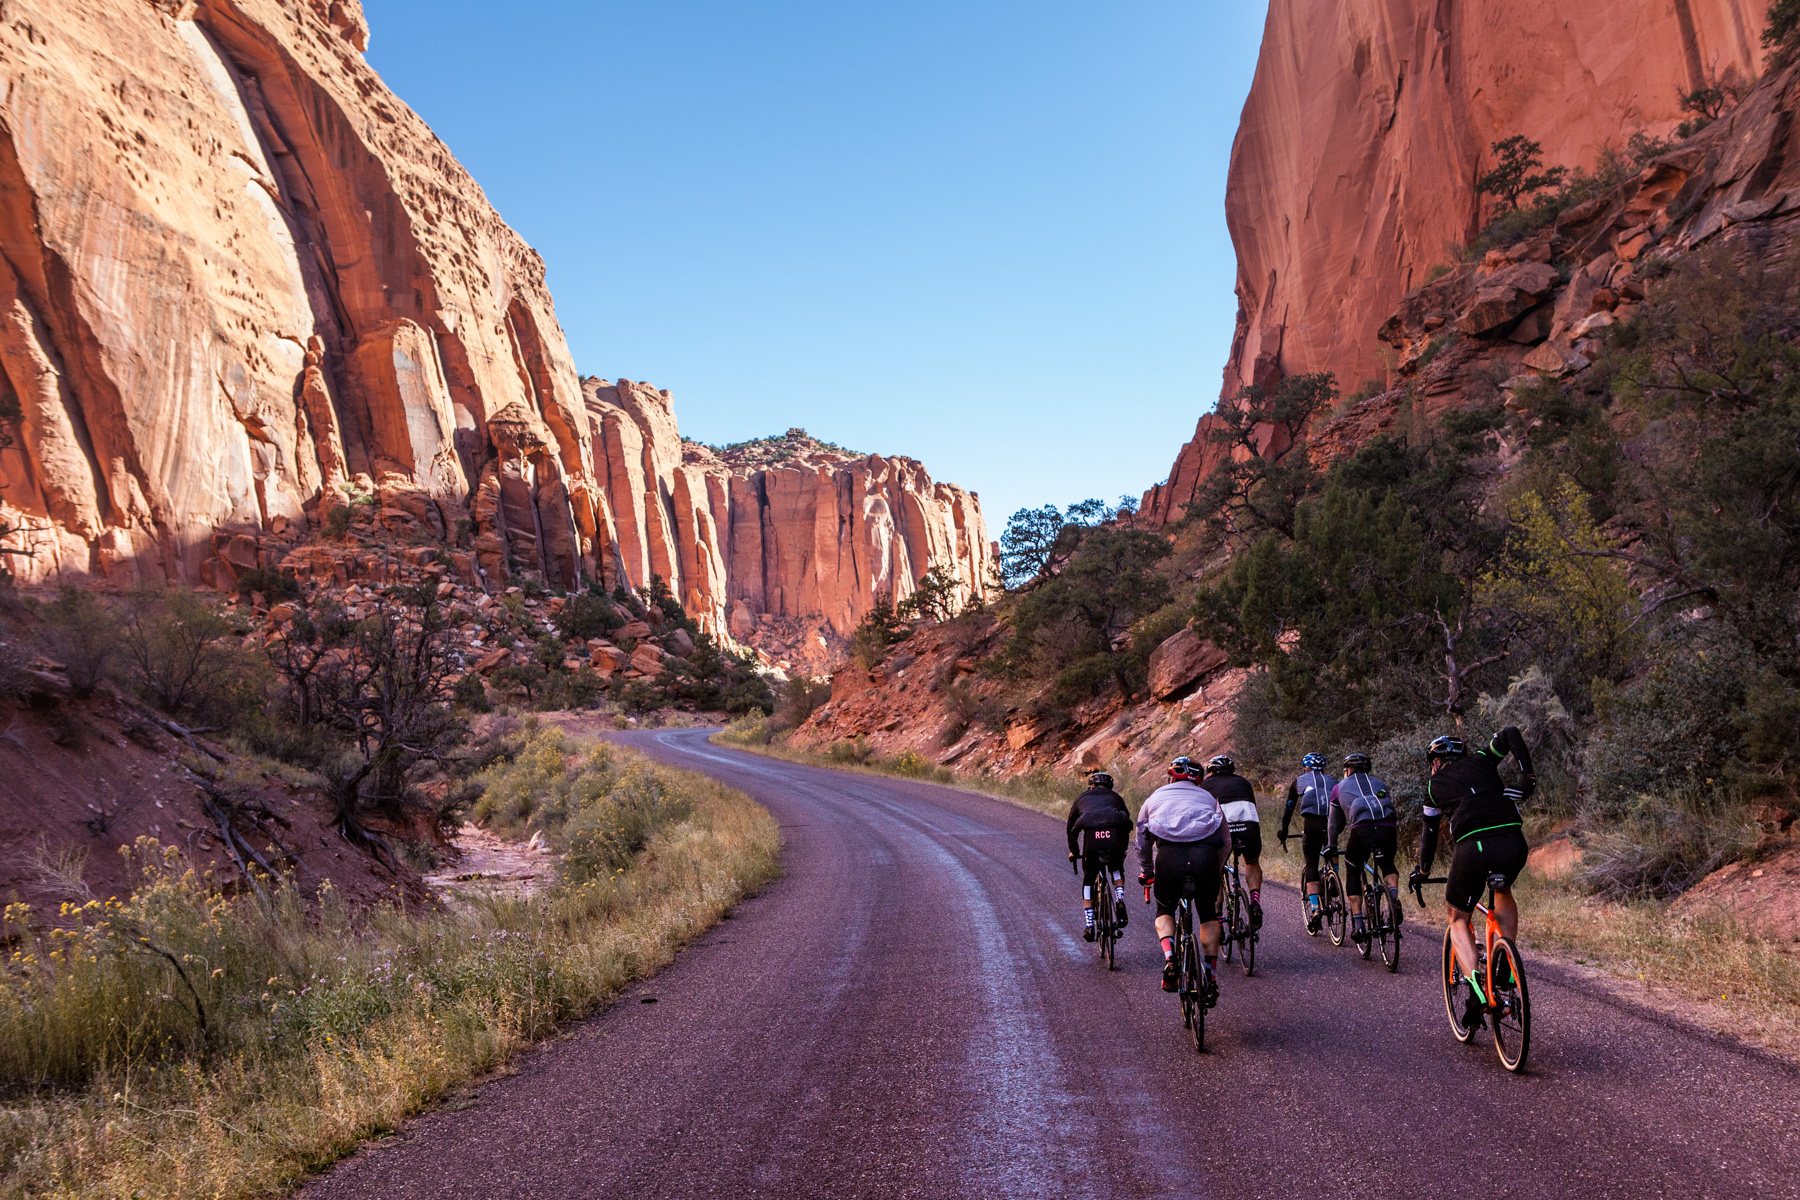 From Rapha to RAID Cycling: new tours guarantee you'll bank some epic memories